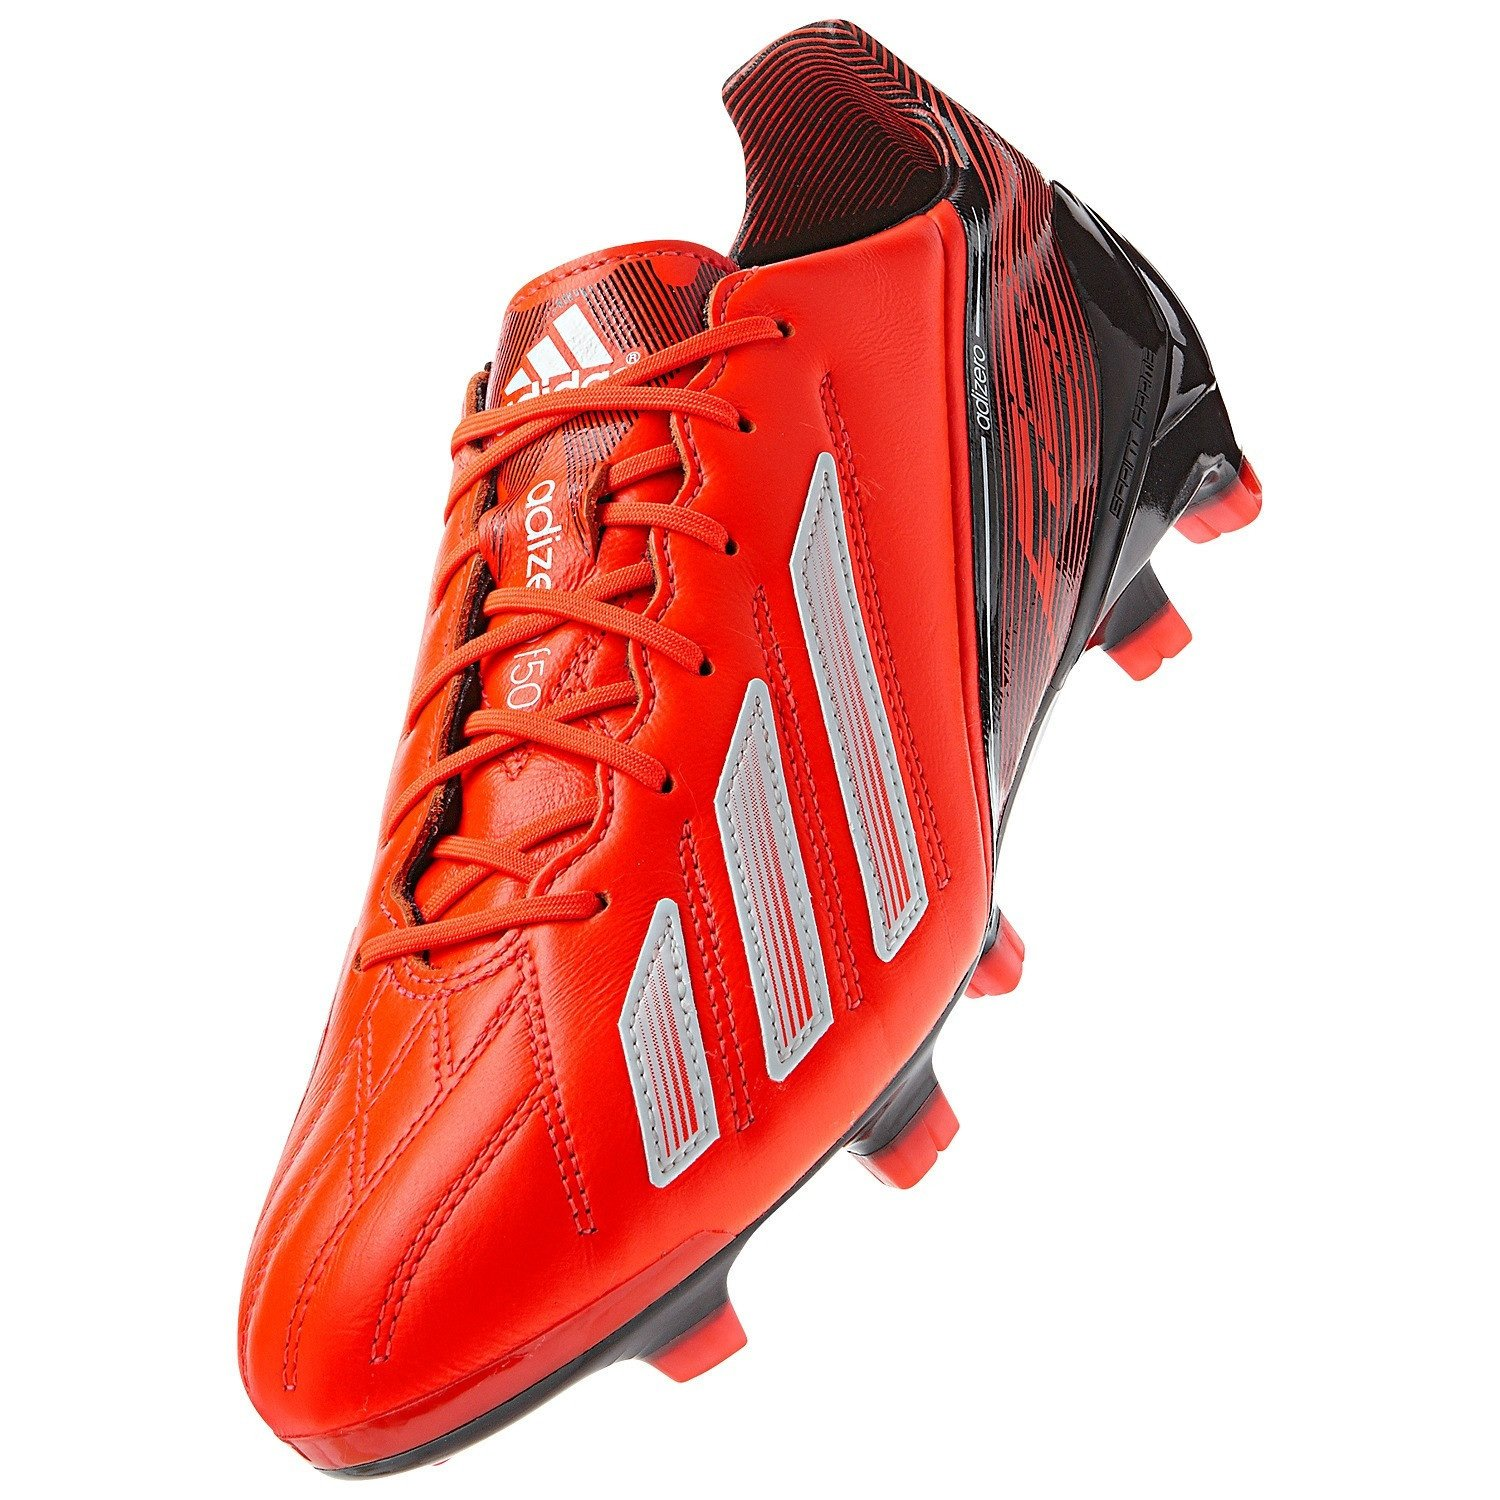 Galleon - Adidas F50 Adizero TRX FG Leather Q33845 Messi Red White Black  Men s Soccer Cleats (Size 11.5) 32b611c65